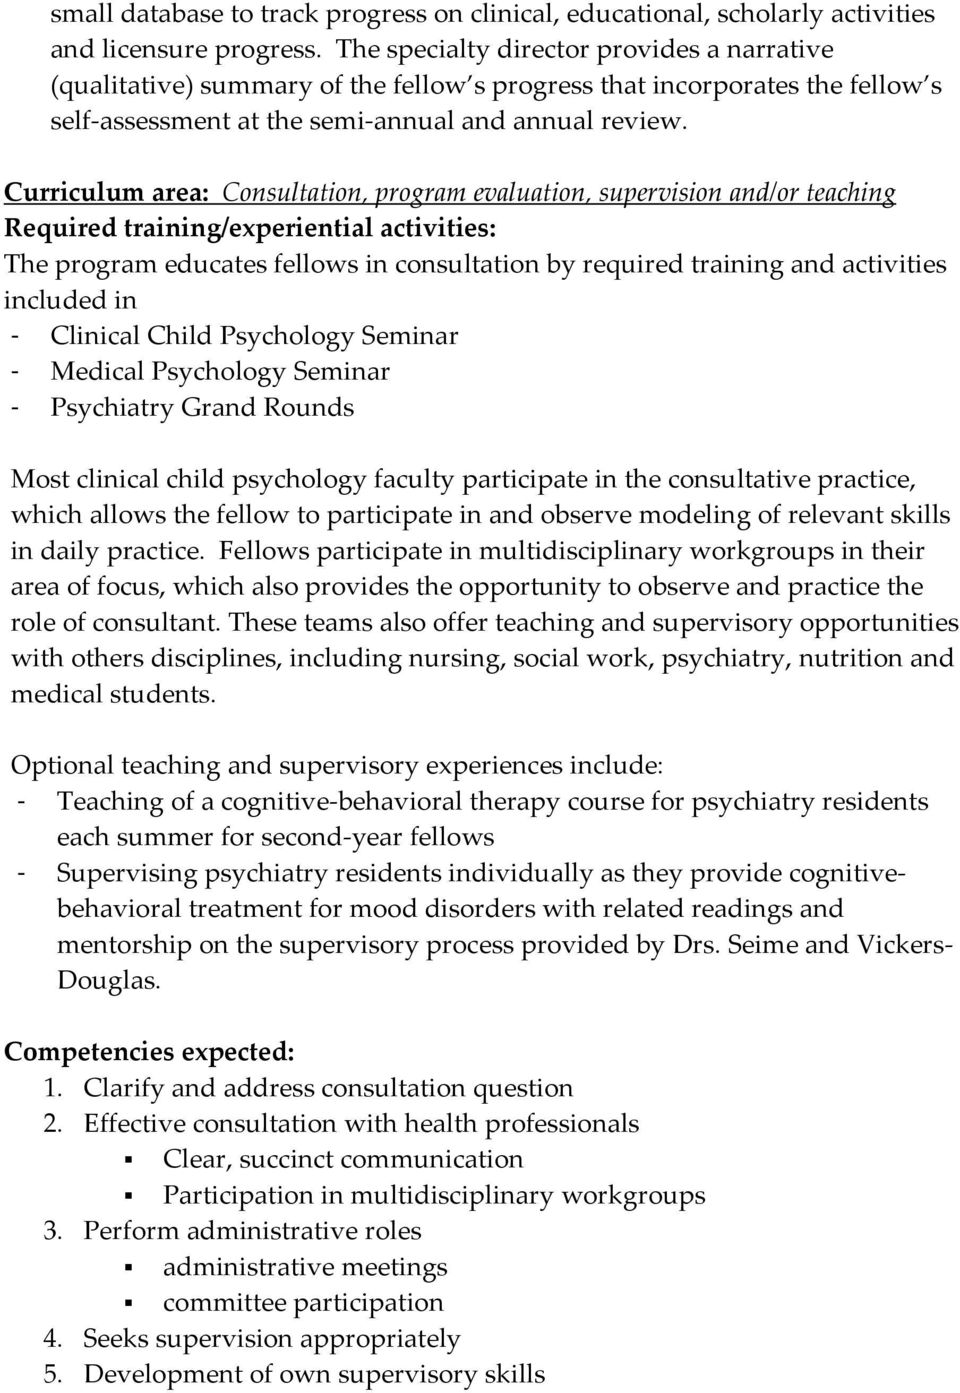 Curriculum area: Consultation, program evaluation, supervision and/or teaching Required training/experiential activities: The program educates fellows in consultation by required training and